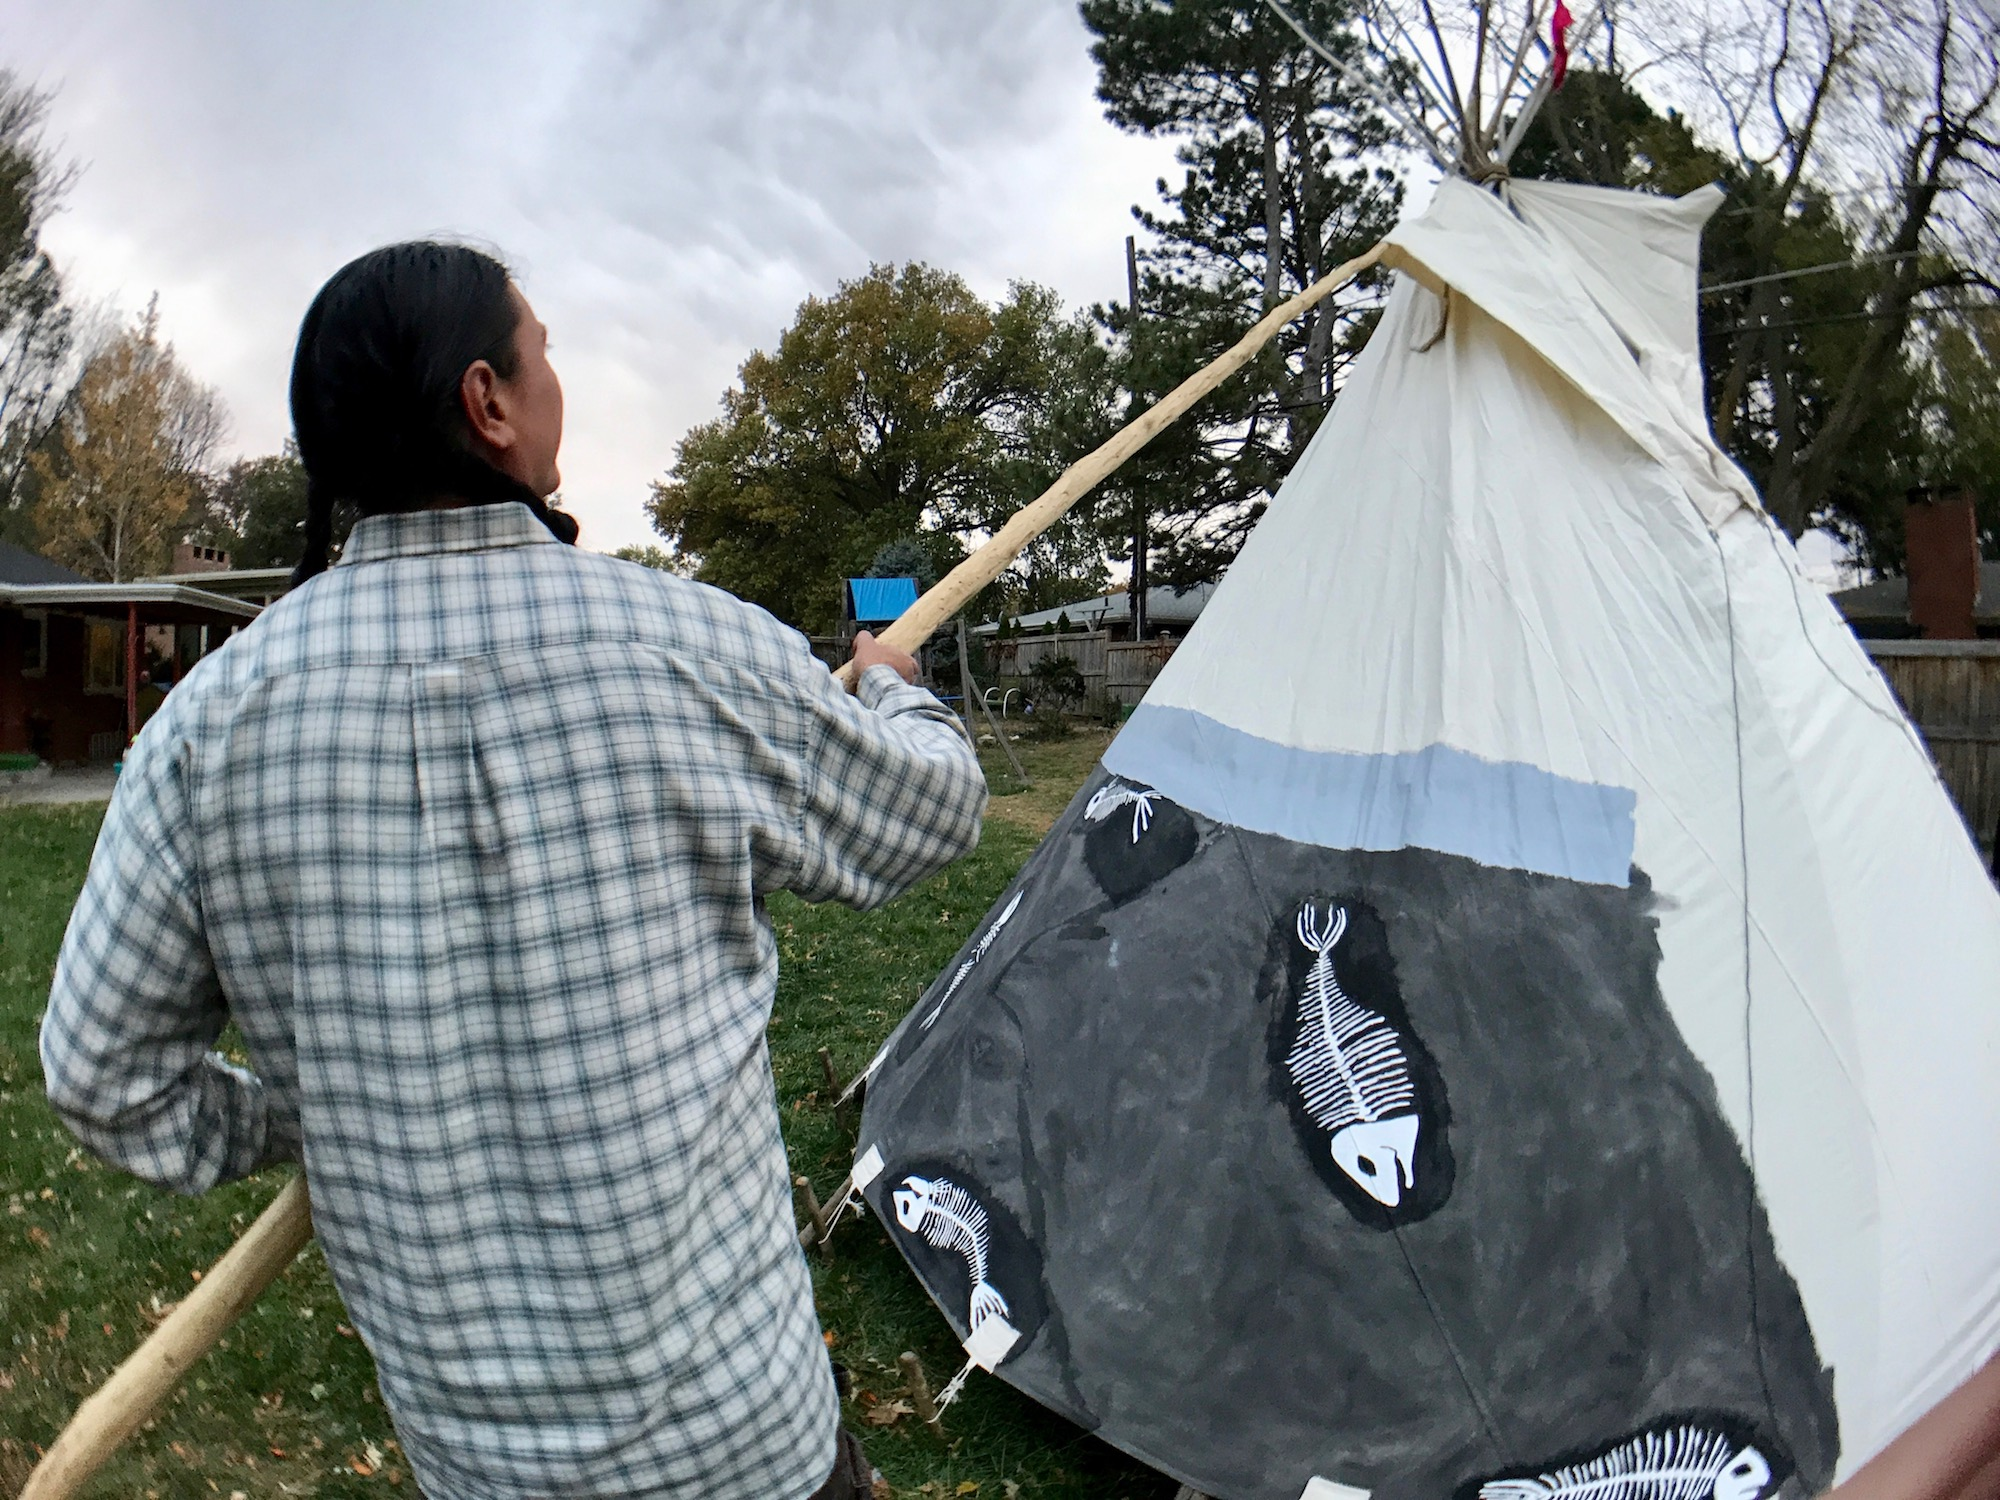 Lakota man dreams of building tipis in Whiteclay to rebuild border town economy